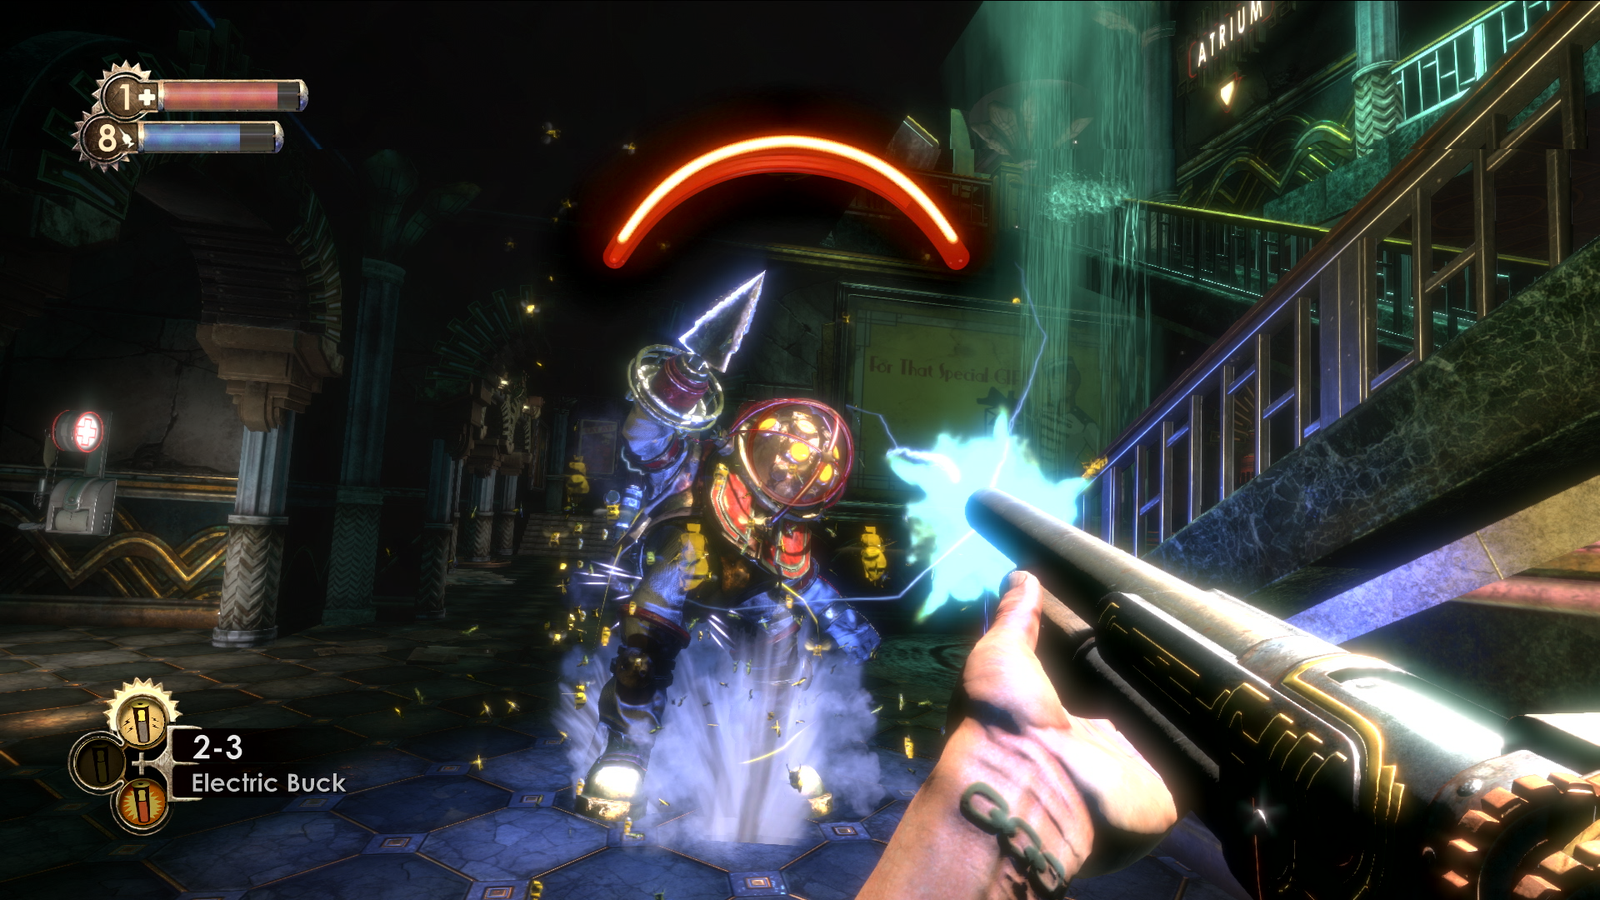 2k_bioshock-the-collection_bio1_bd-fight-2-0